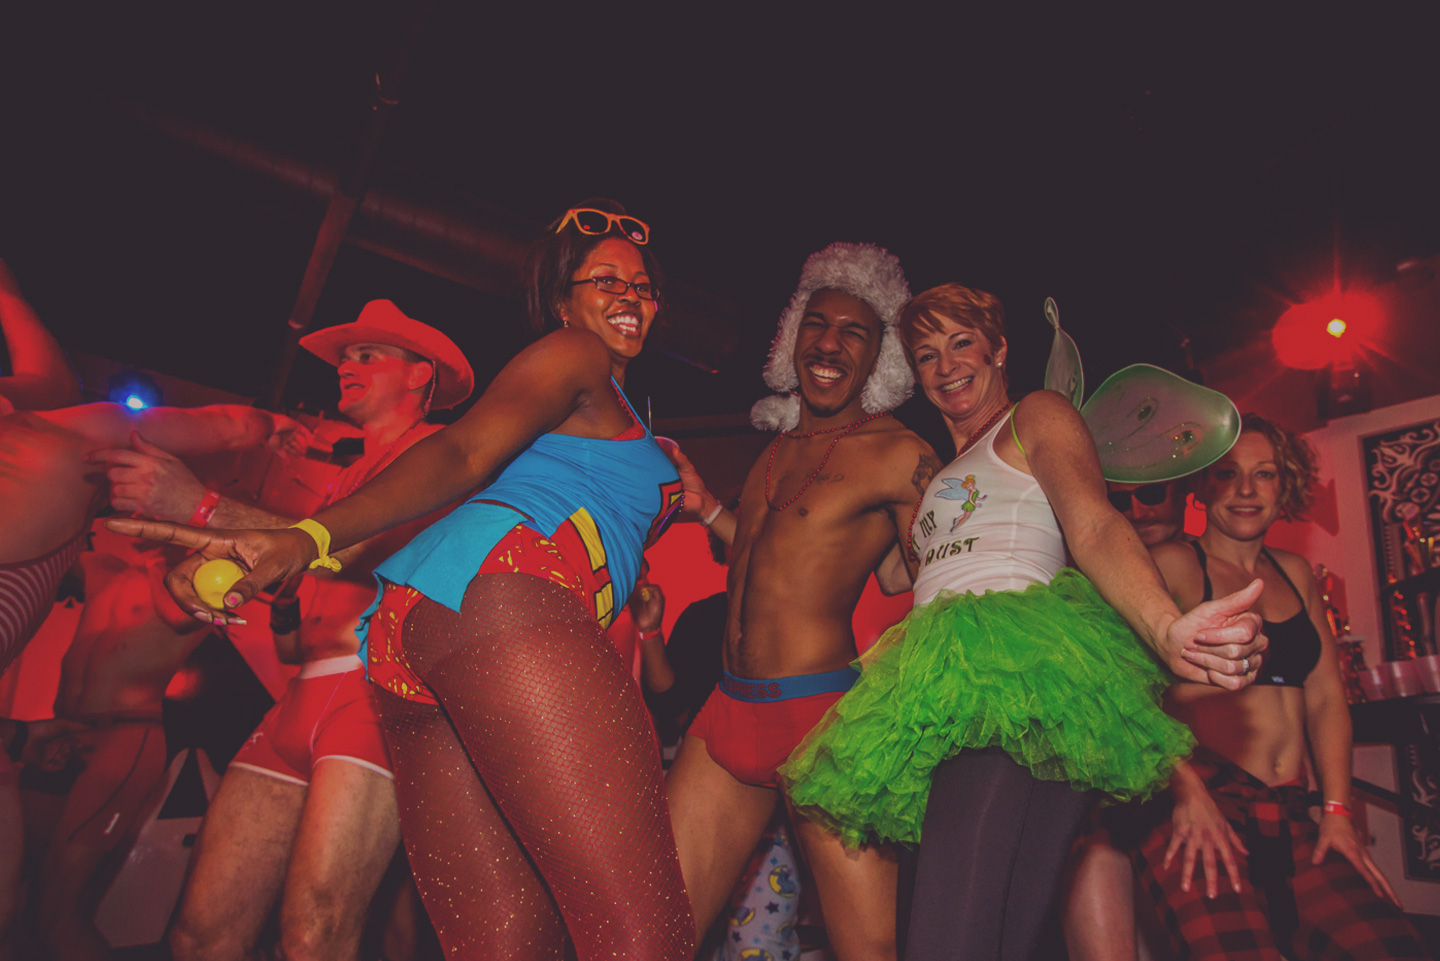 Cupid's Charity - Undie Run Costumes